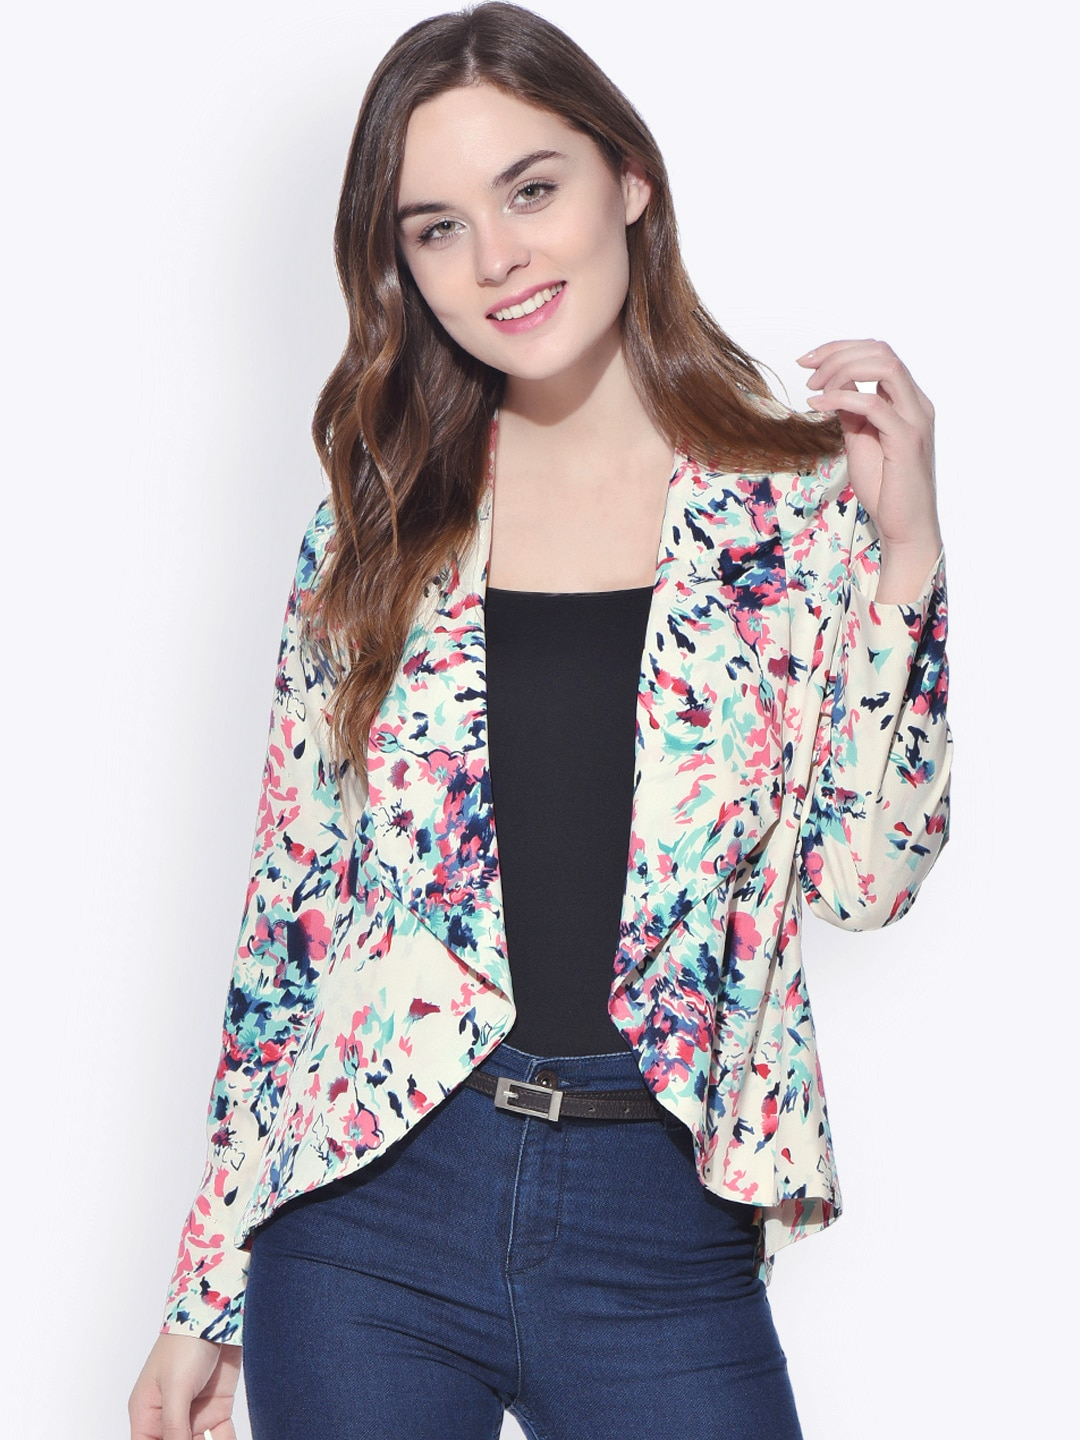 dd6e6ad334e Blazers - Buy Blazer Online at Best Price in India